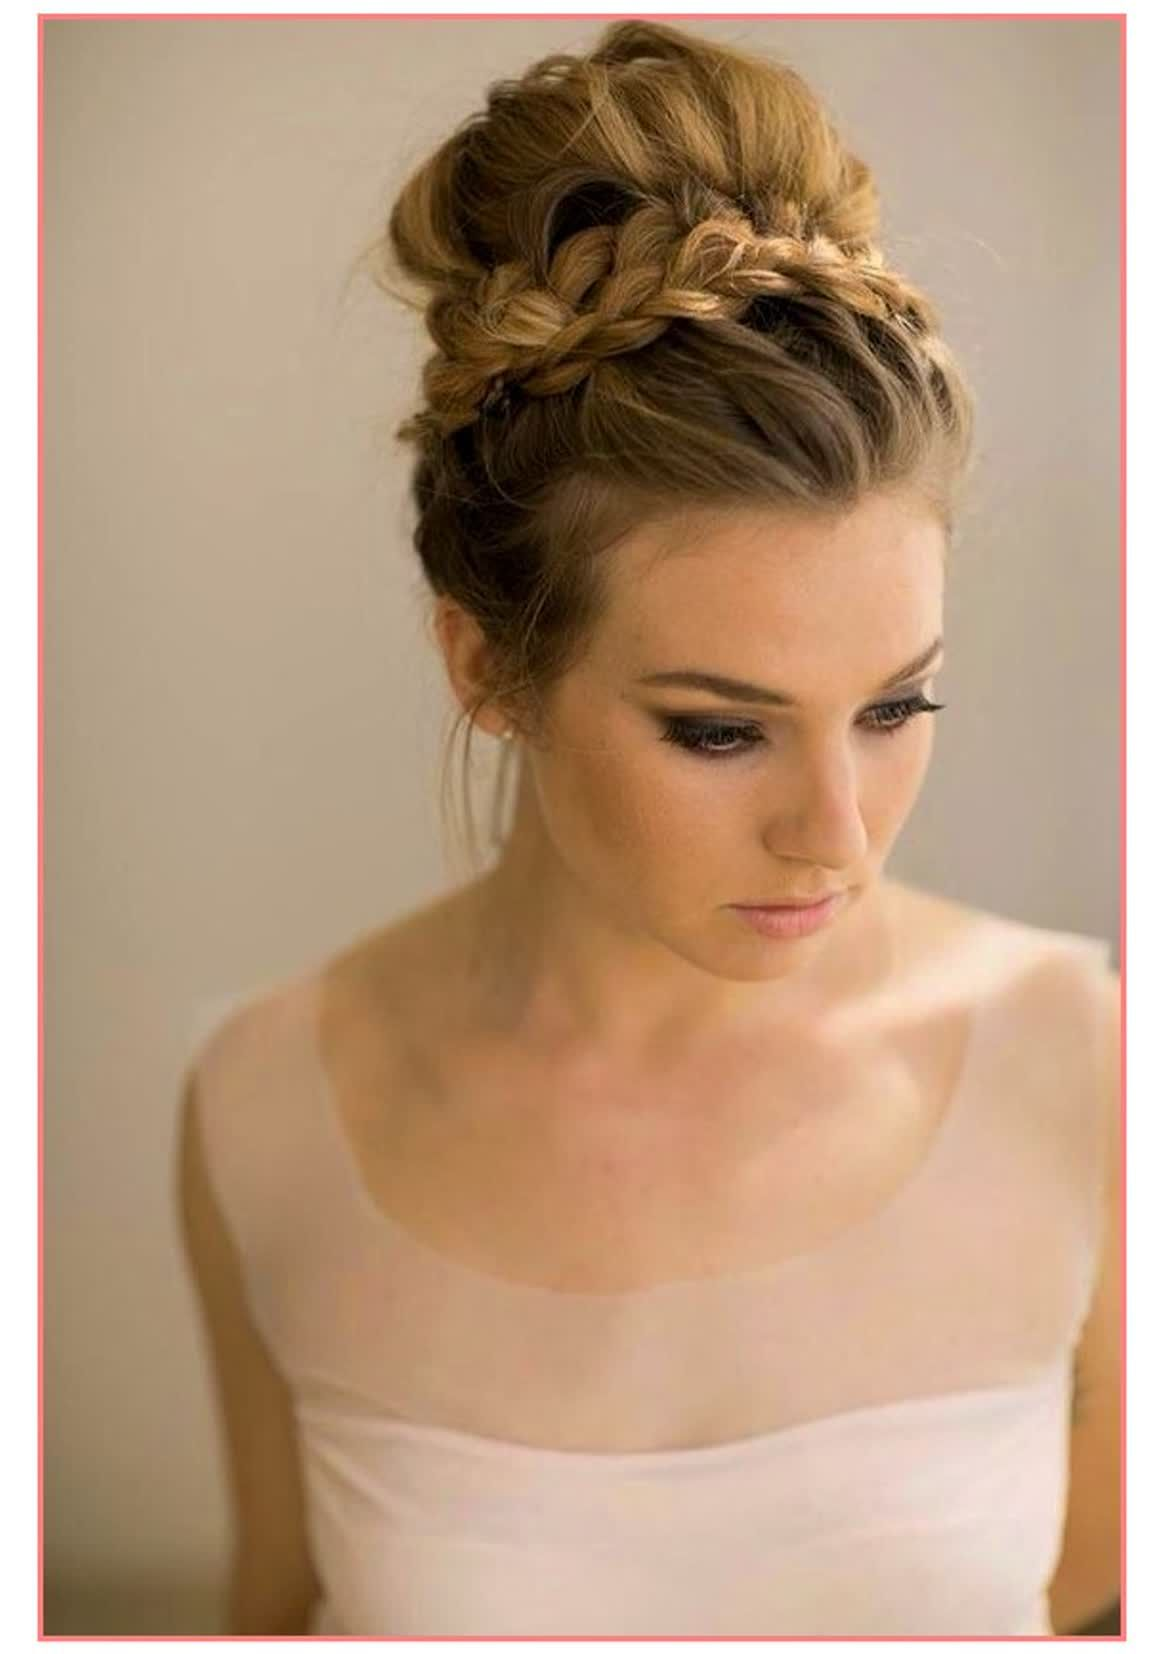 best hairstyles for wedding guest hairstyles | the best hairstyles